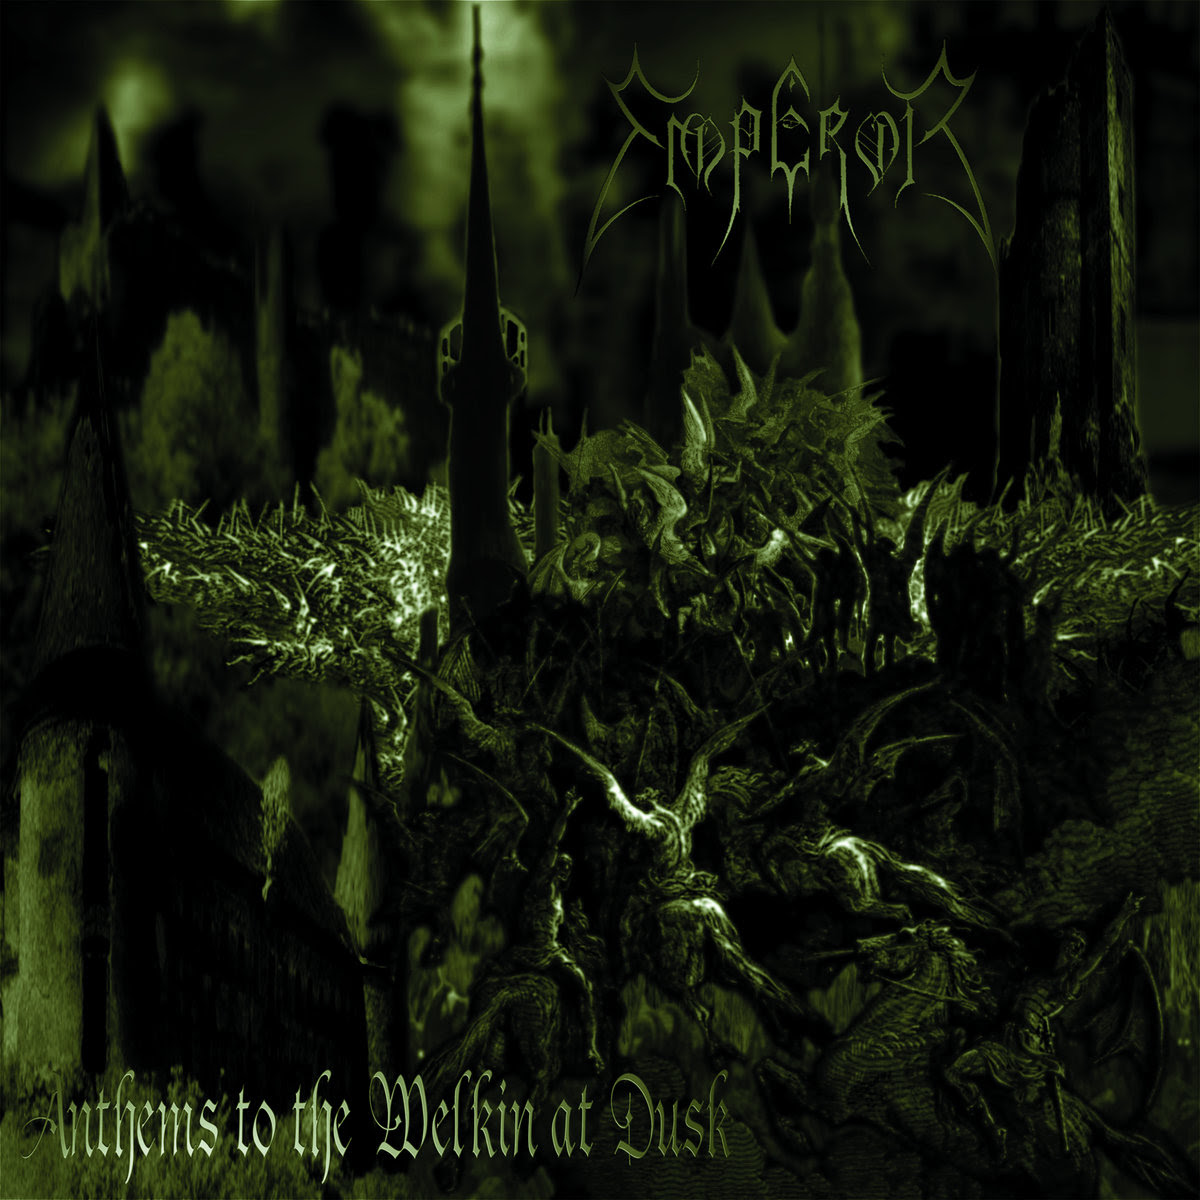 Emperor - Anthems to the Welkin at Dusk (Reissue 2004)